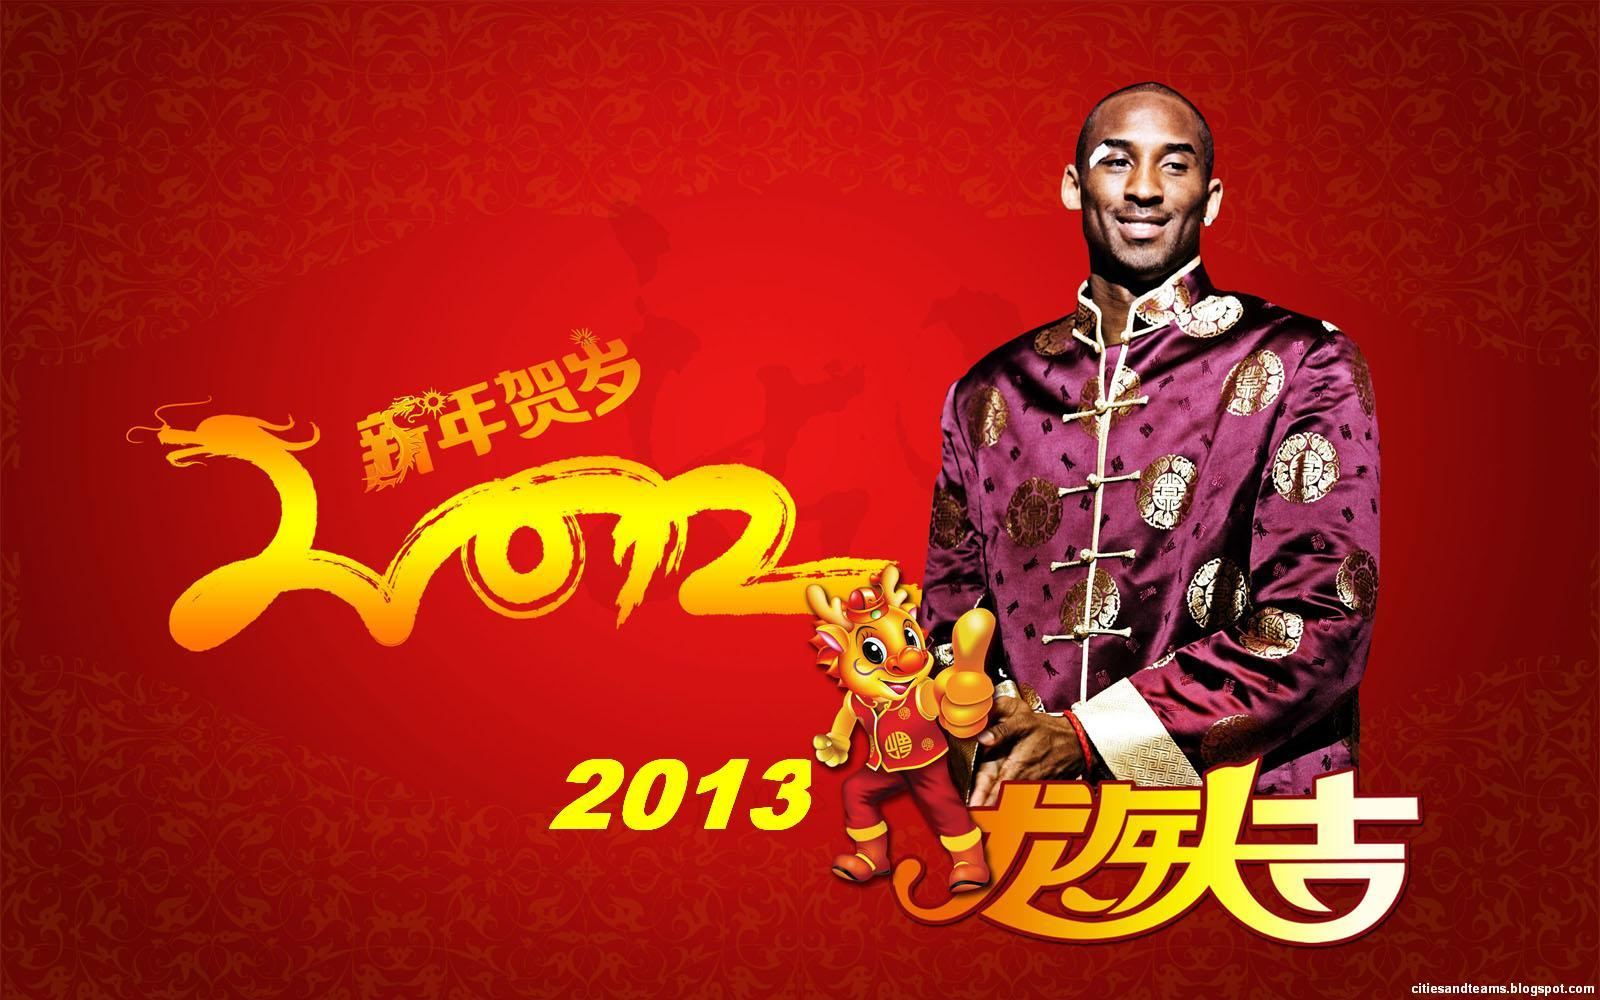 http://2.bp.blogspot.com/-mlF6rIBKqPI/UM9MXhhFYpI/AAAAAAAAI2E/yjiTK24aVU8/s1600/Kobe_Bryant_Chinese_New_Year_2013_China_Los_Angeles_Lakers_NBA_USA_Hd_Desktop_Wallpaper_citiesandteams.blogspot.com.jpg